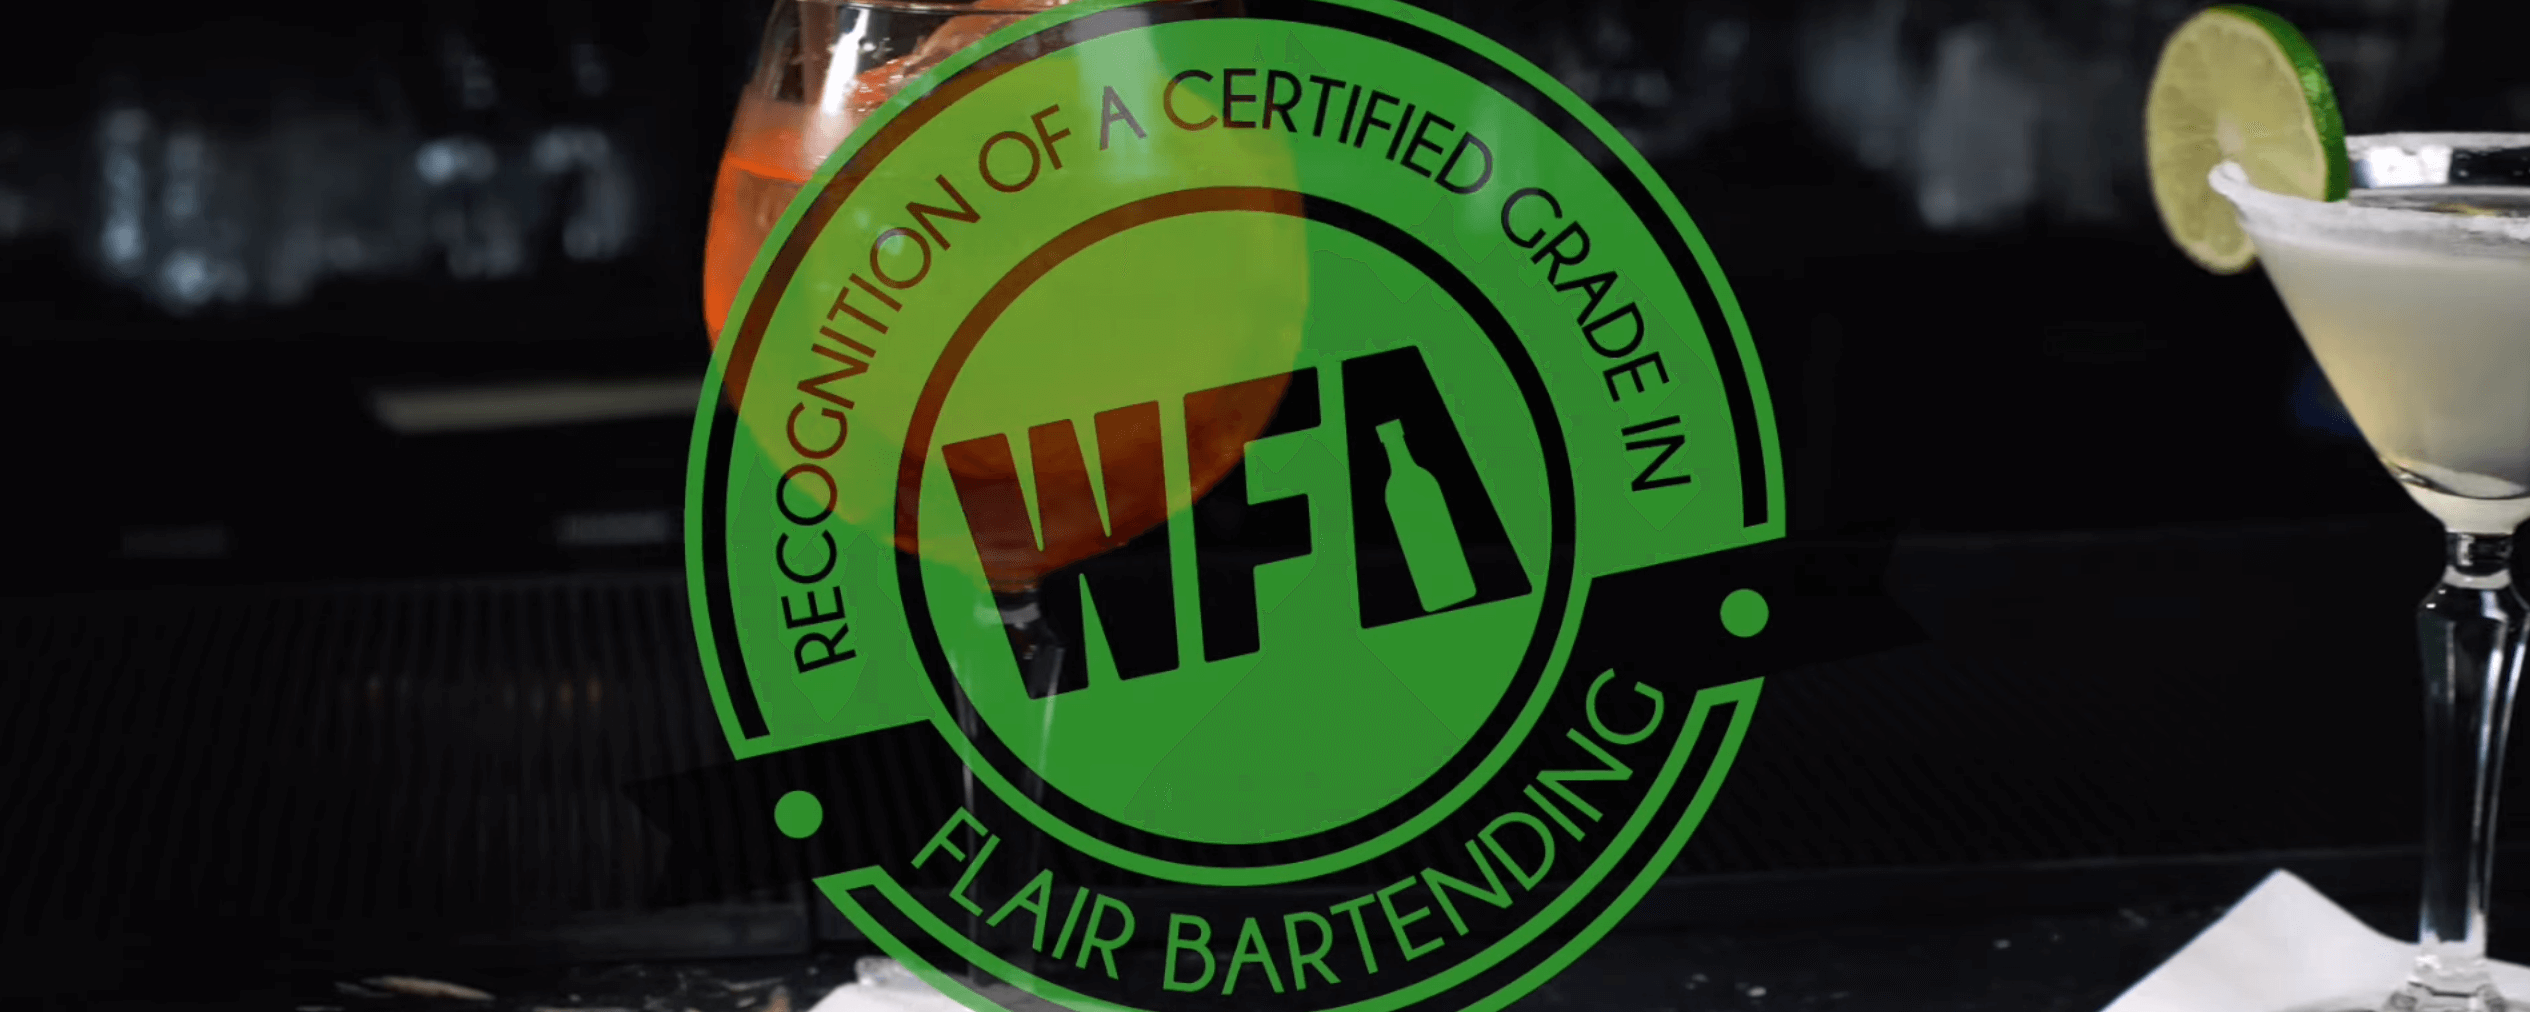 Are you ready for the WFA Green grading level?